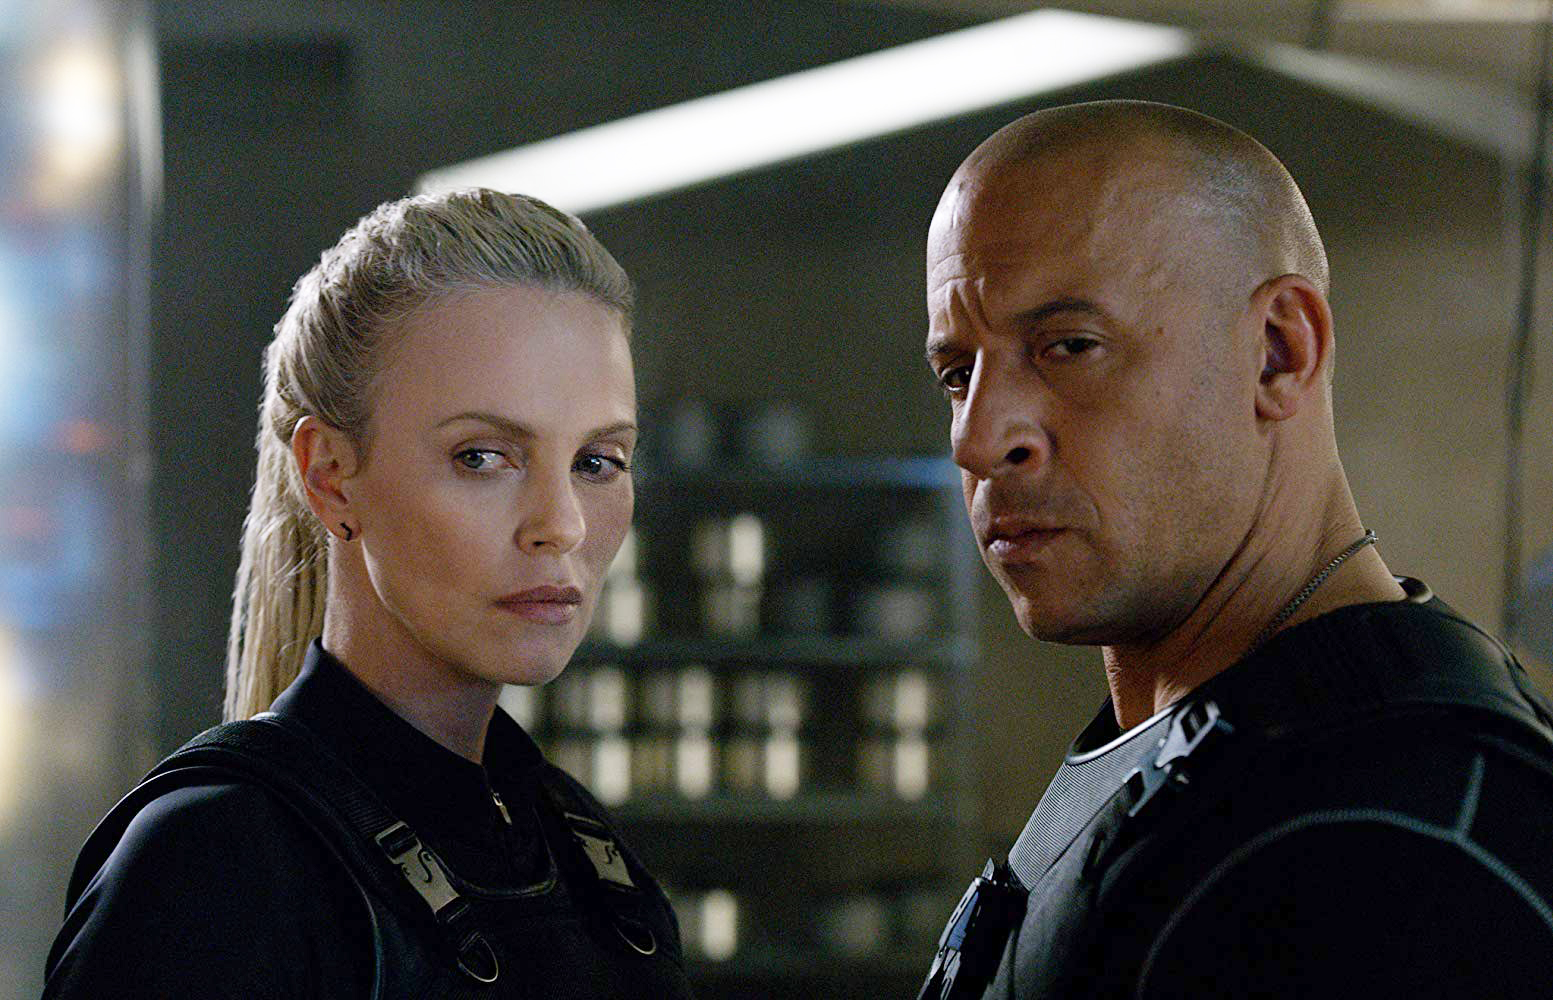 Fast & Furious, Charlize Theron protagonista di uno spin-off?